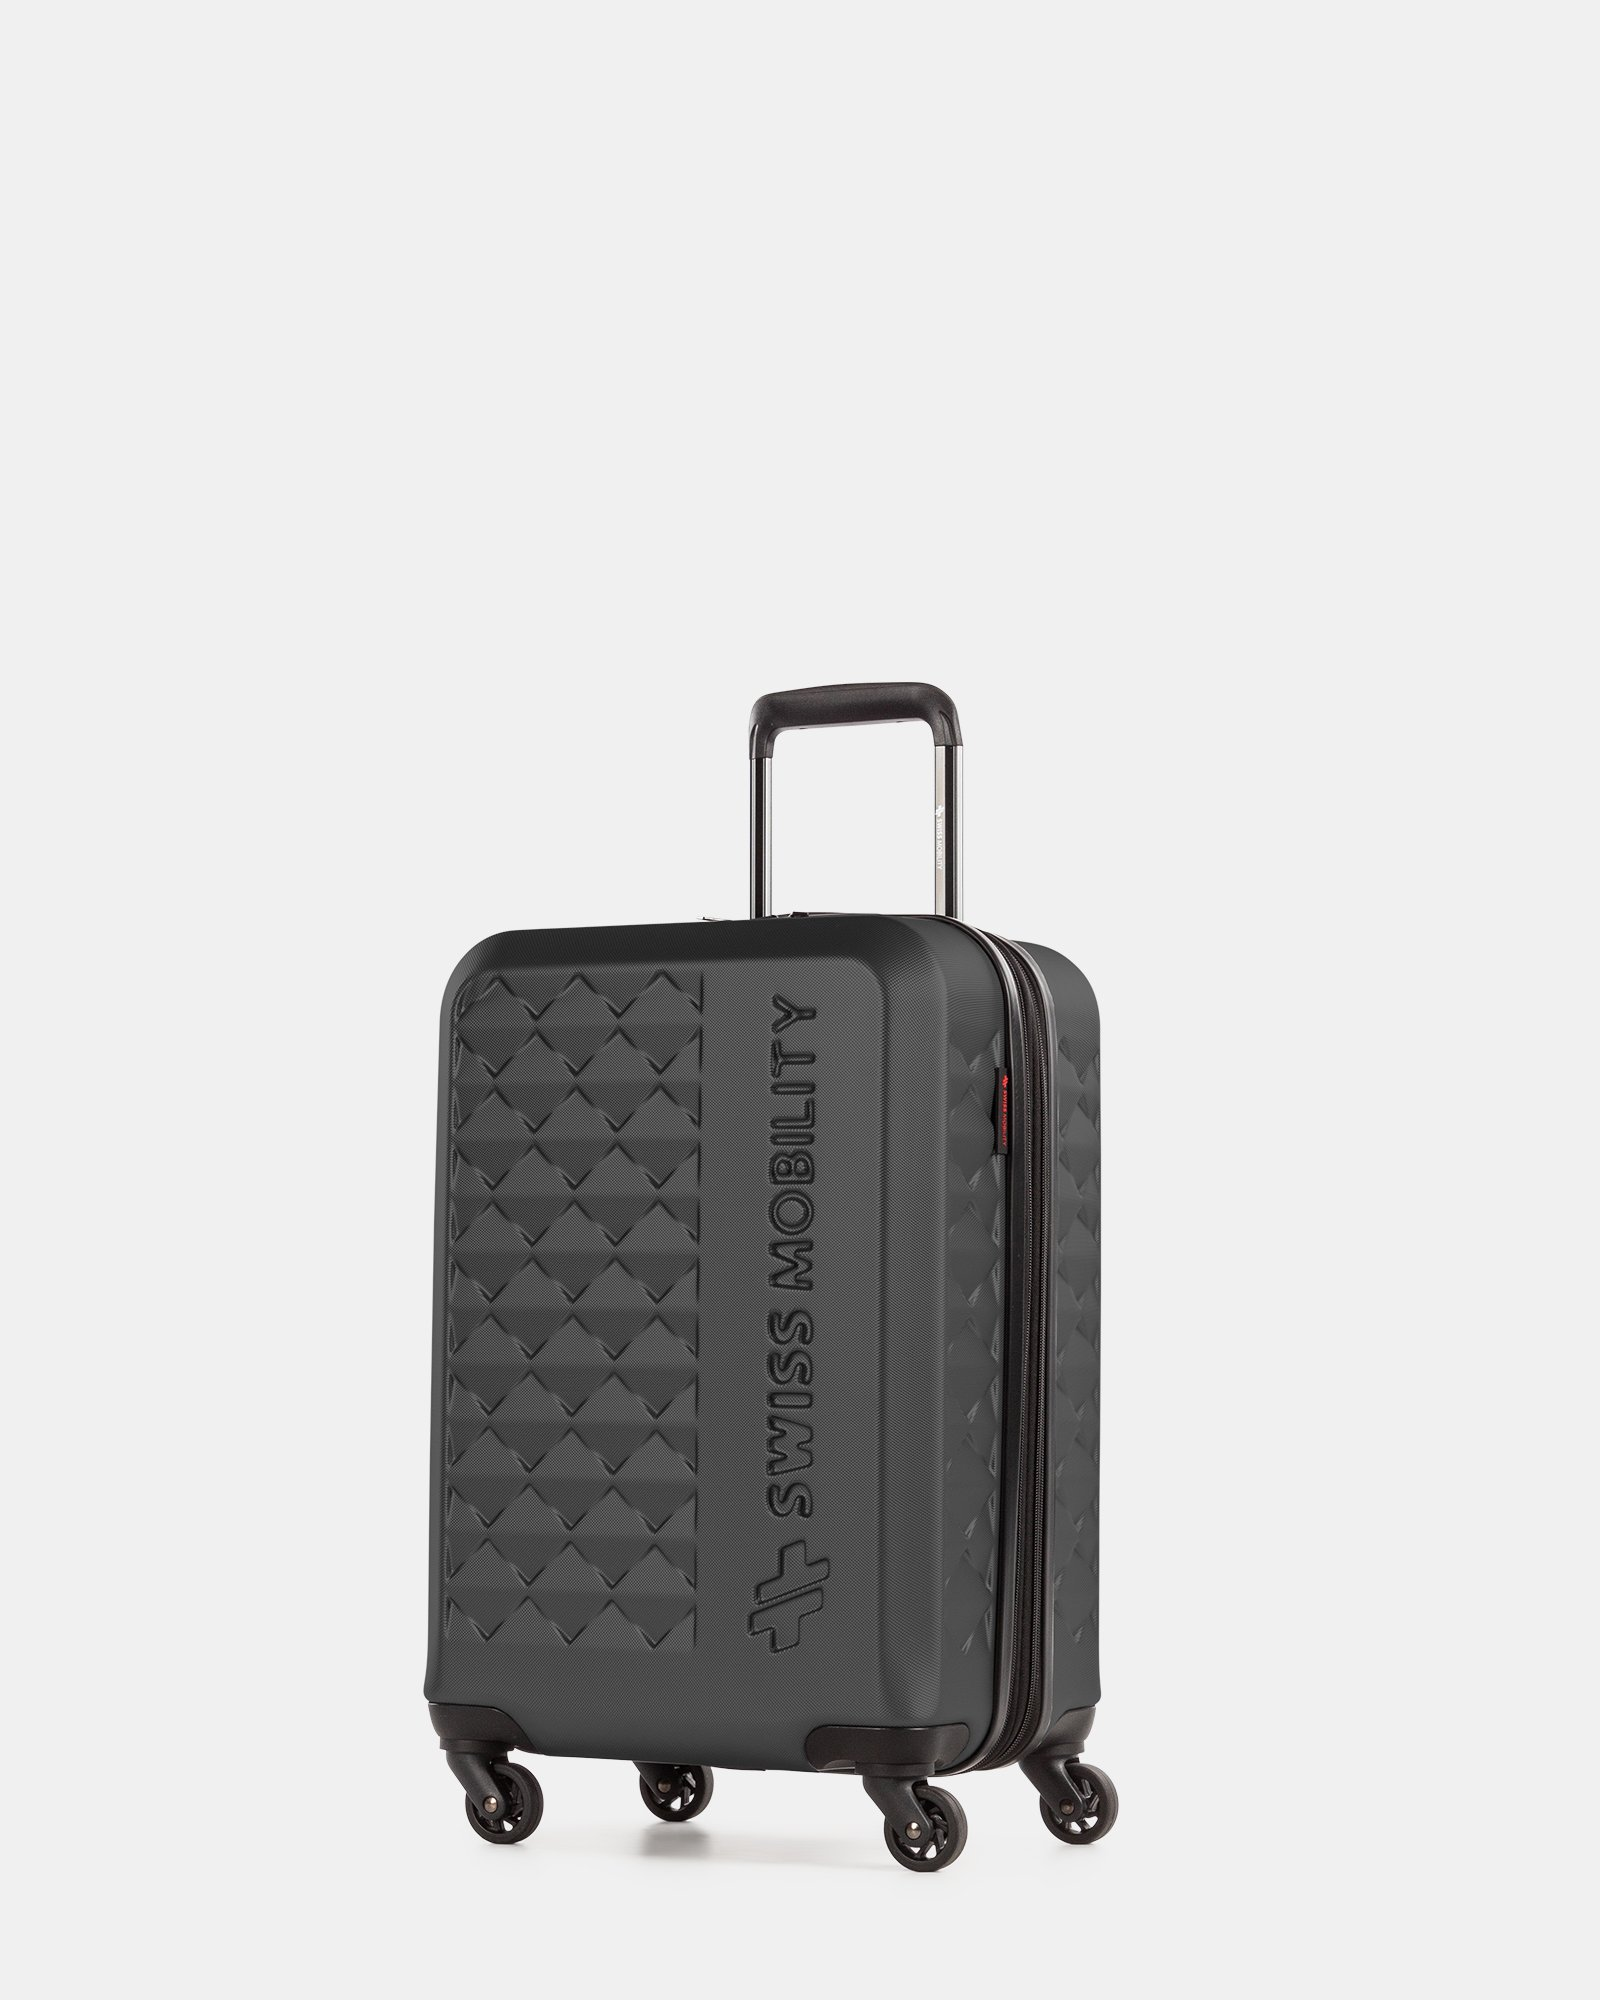 Ridge - Lightweight Hardside Carry-on with Spinner wheels - Black  - Swiss Mobility - Zoom